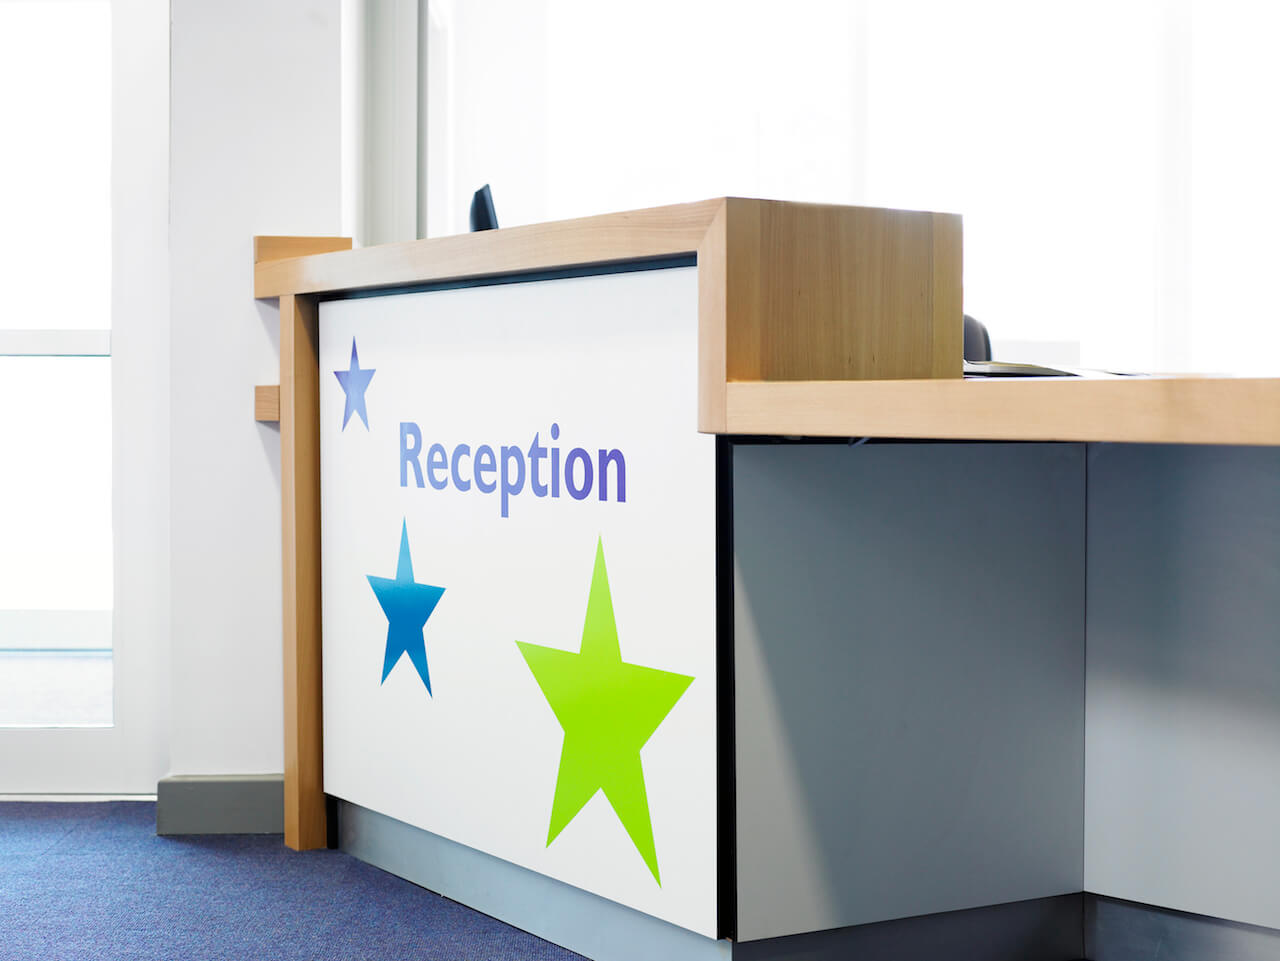 Environmental graphic design with colourful stars in the school reception area